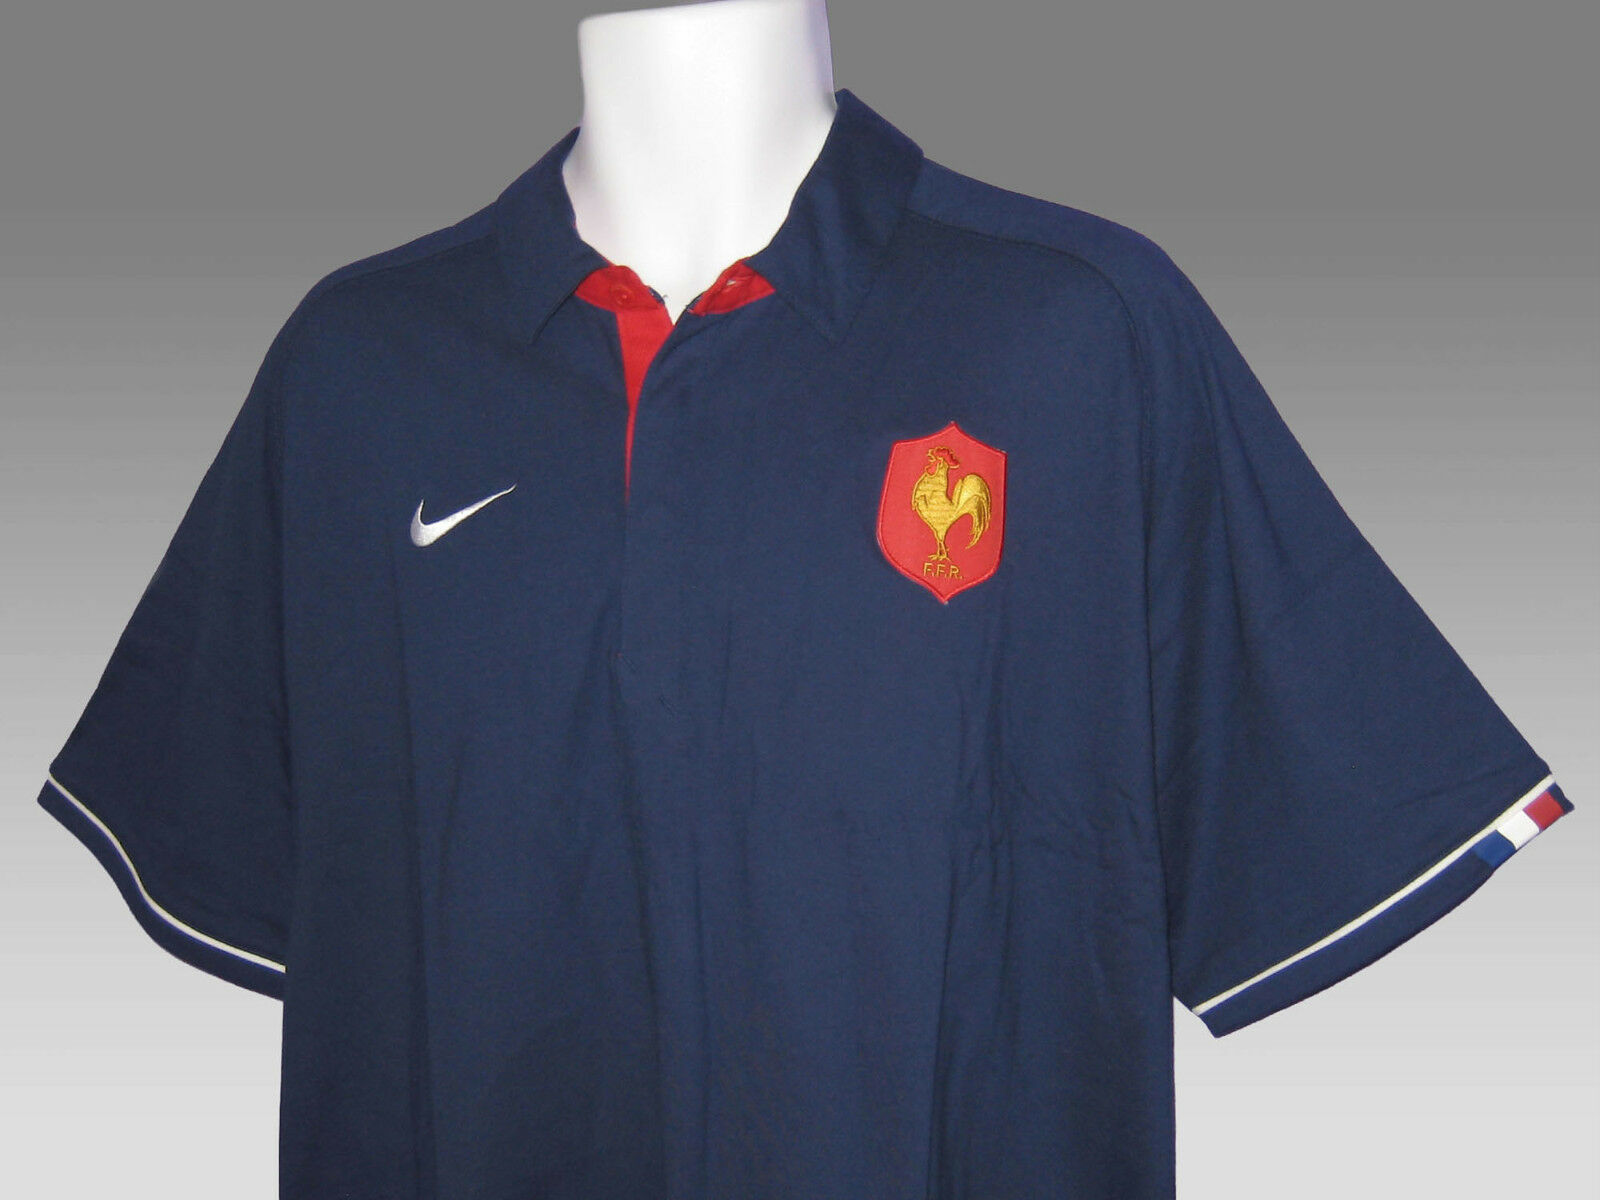 NEW Vintage Nike Francia Rugby Cotone Polo Blu Navy XXL